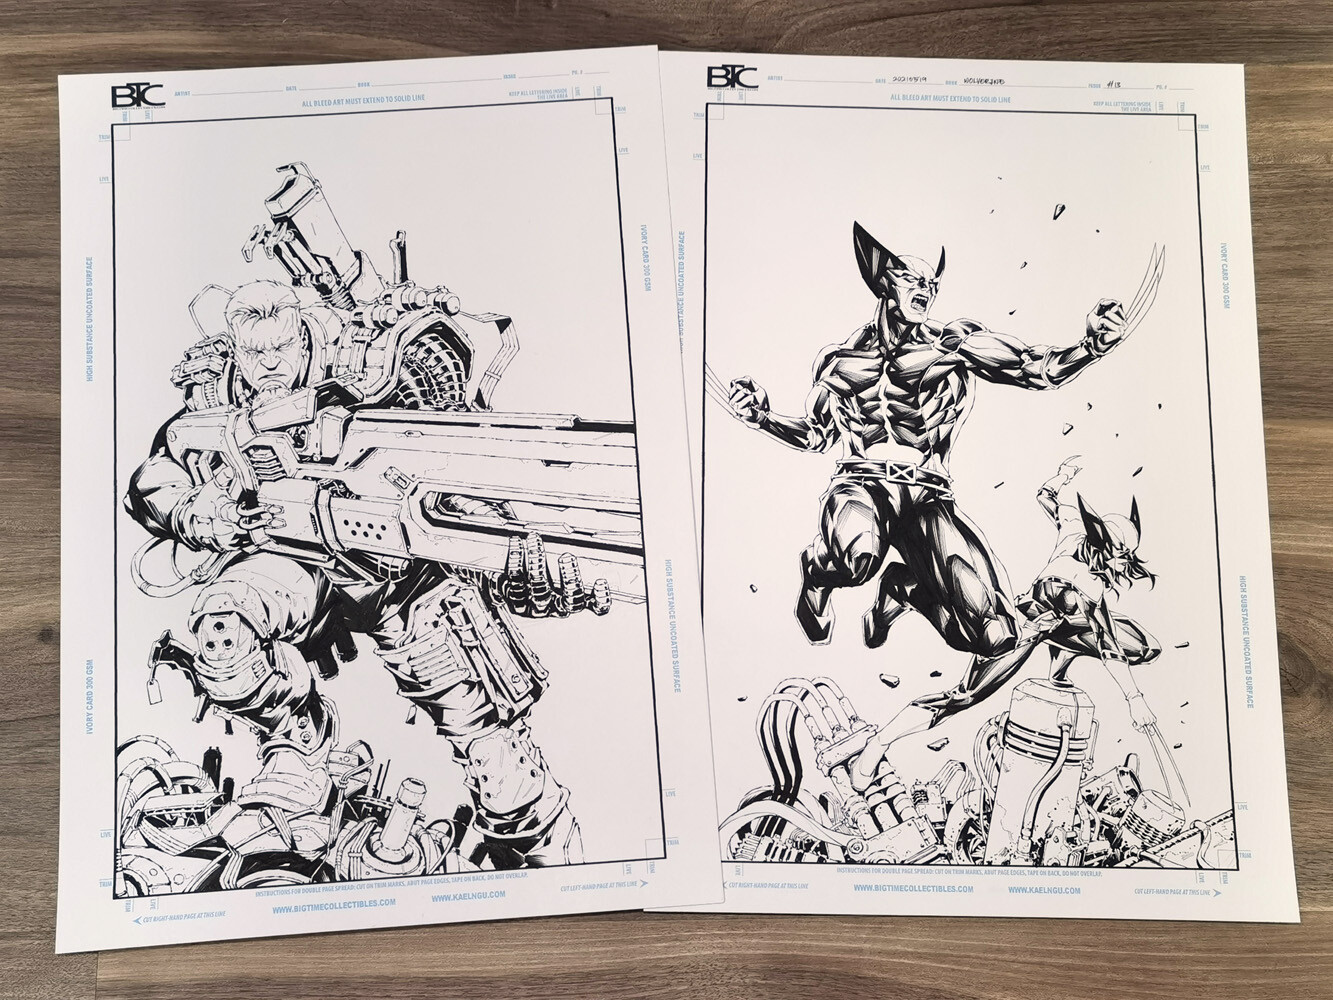 Original art isnt connected, as Cable was done as a standalone piece at first.